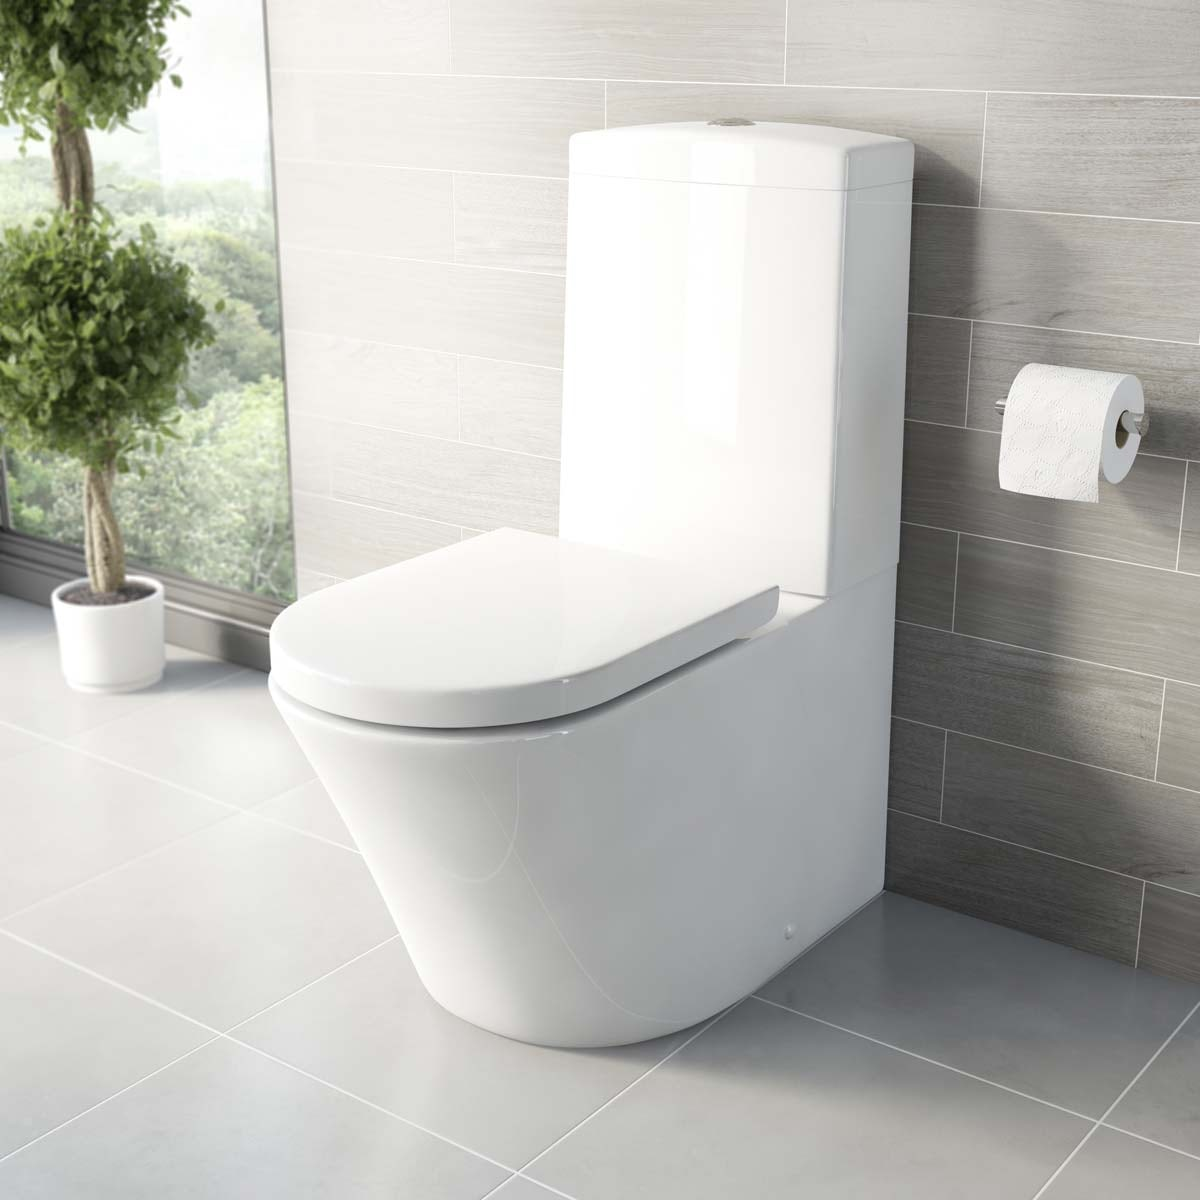 Tate close coupled toilet with luxury soft close toilet seat